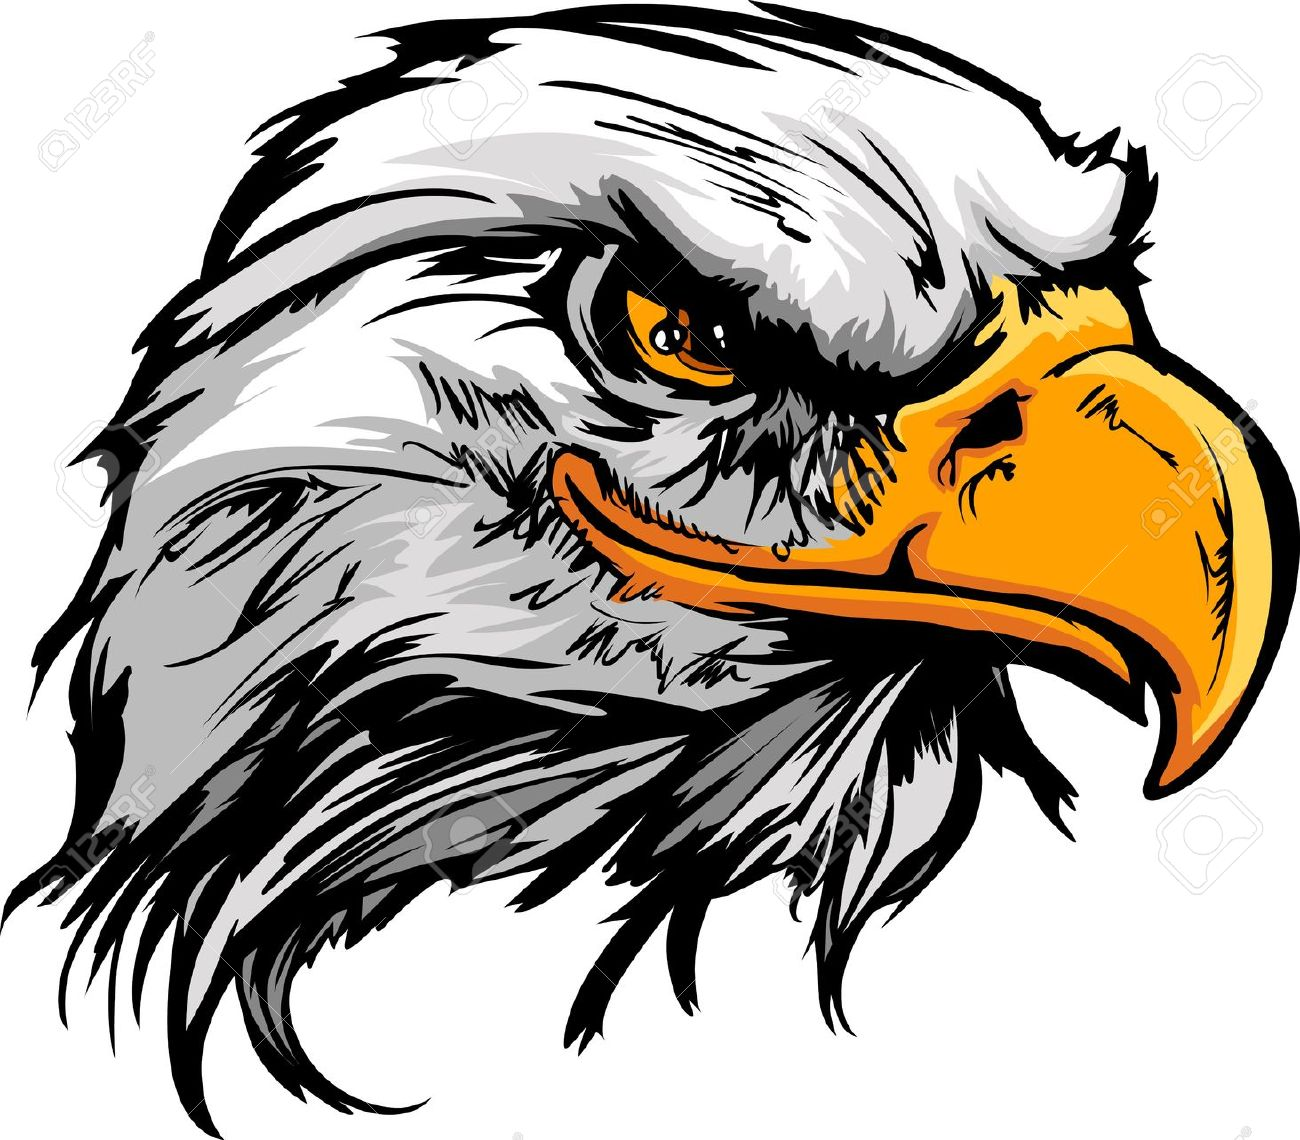 Eagles Clipart Free Download | Free download best Eagles Clipart ...